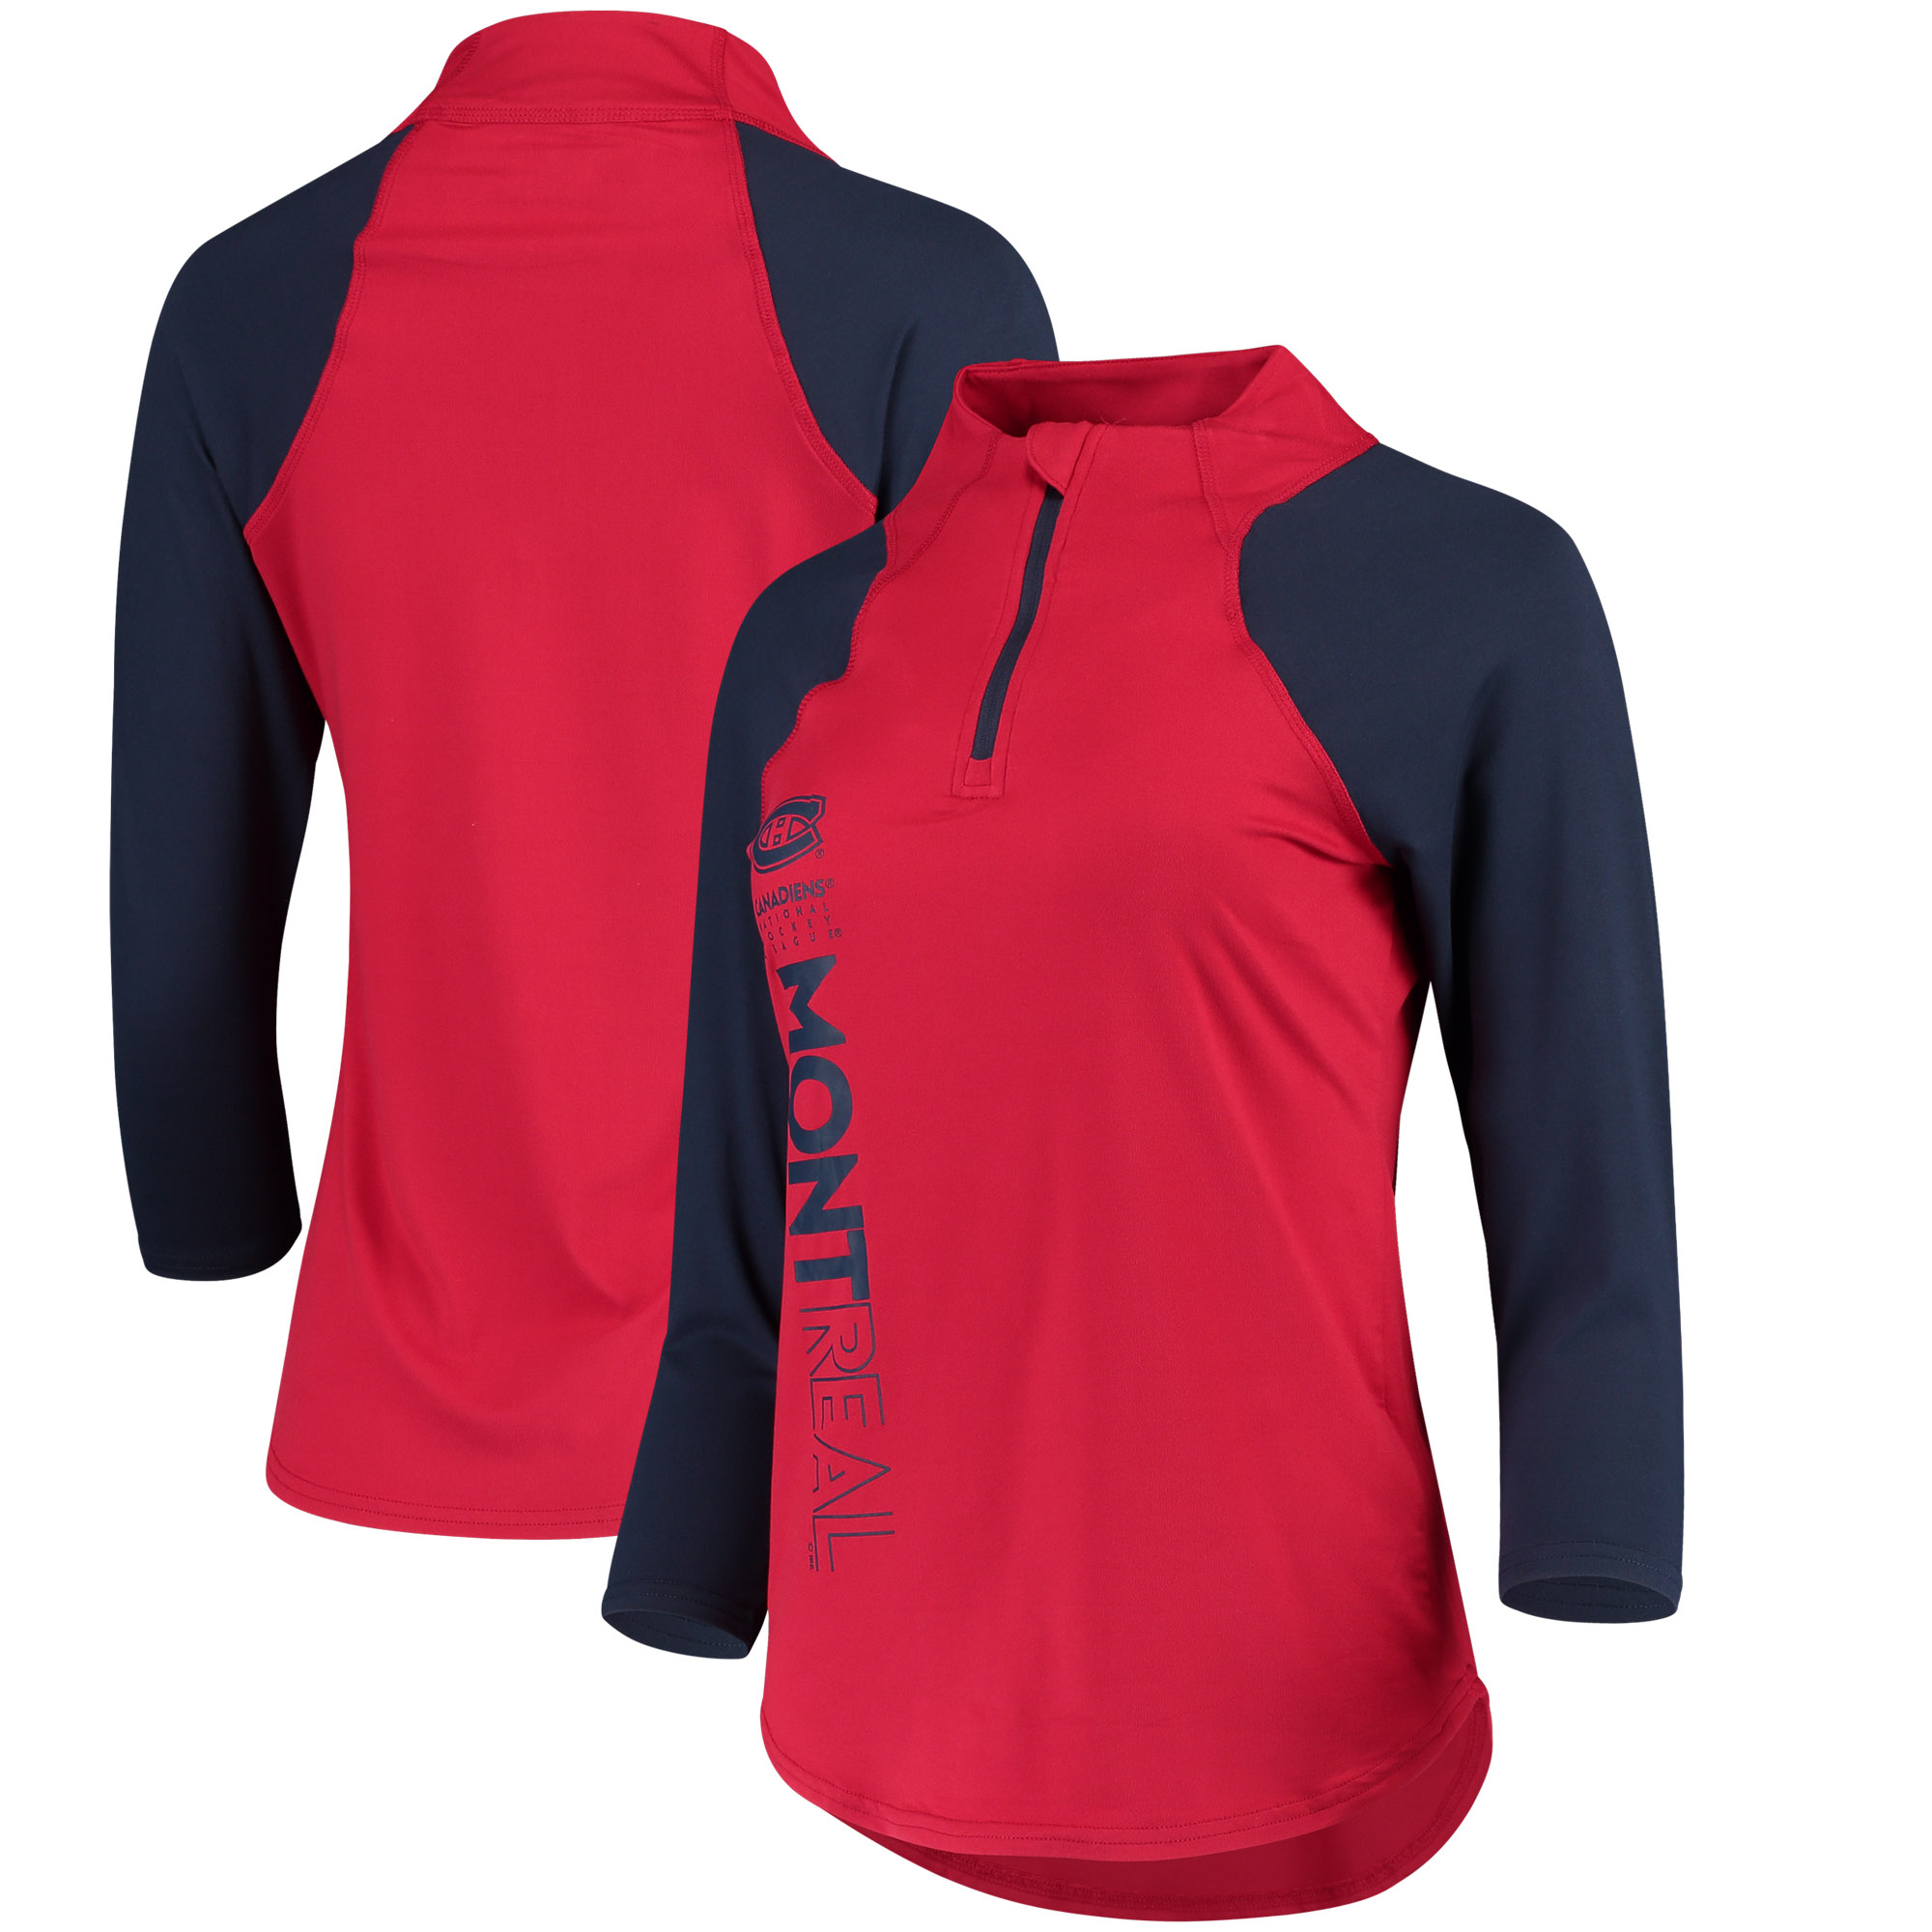 Montreal Canadiens G-III 4Her by Carl Banks Women's Zip It Up Quarter-Zip Long Sleeve T-Shirt Red Blue by G-III LEATHER FASHIONS INC